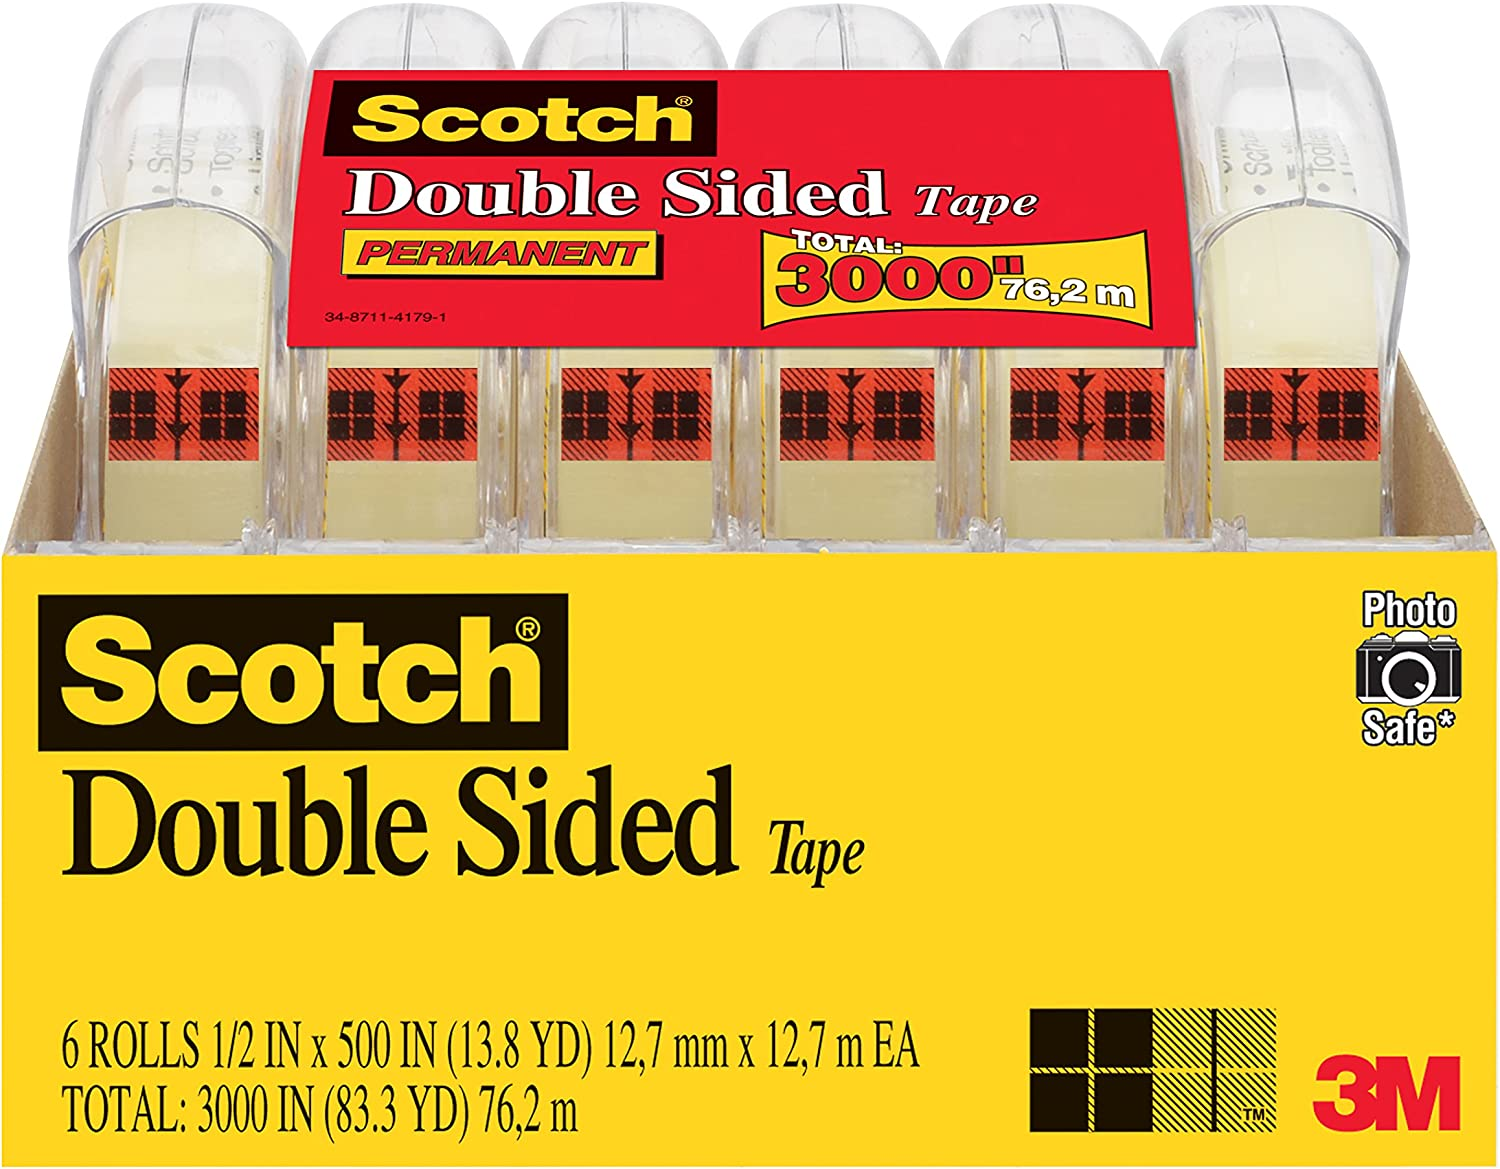 Scotch Brand Double Sided Tape, No Liner, Strong, Engineered for Office and Home Use, 1/2 x 500 Inches, 6 Dispensered Rolls (6137H-2PC-MP)